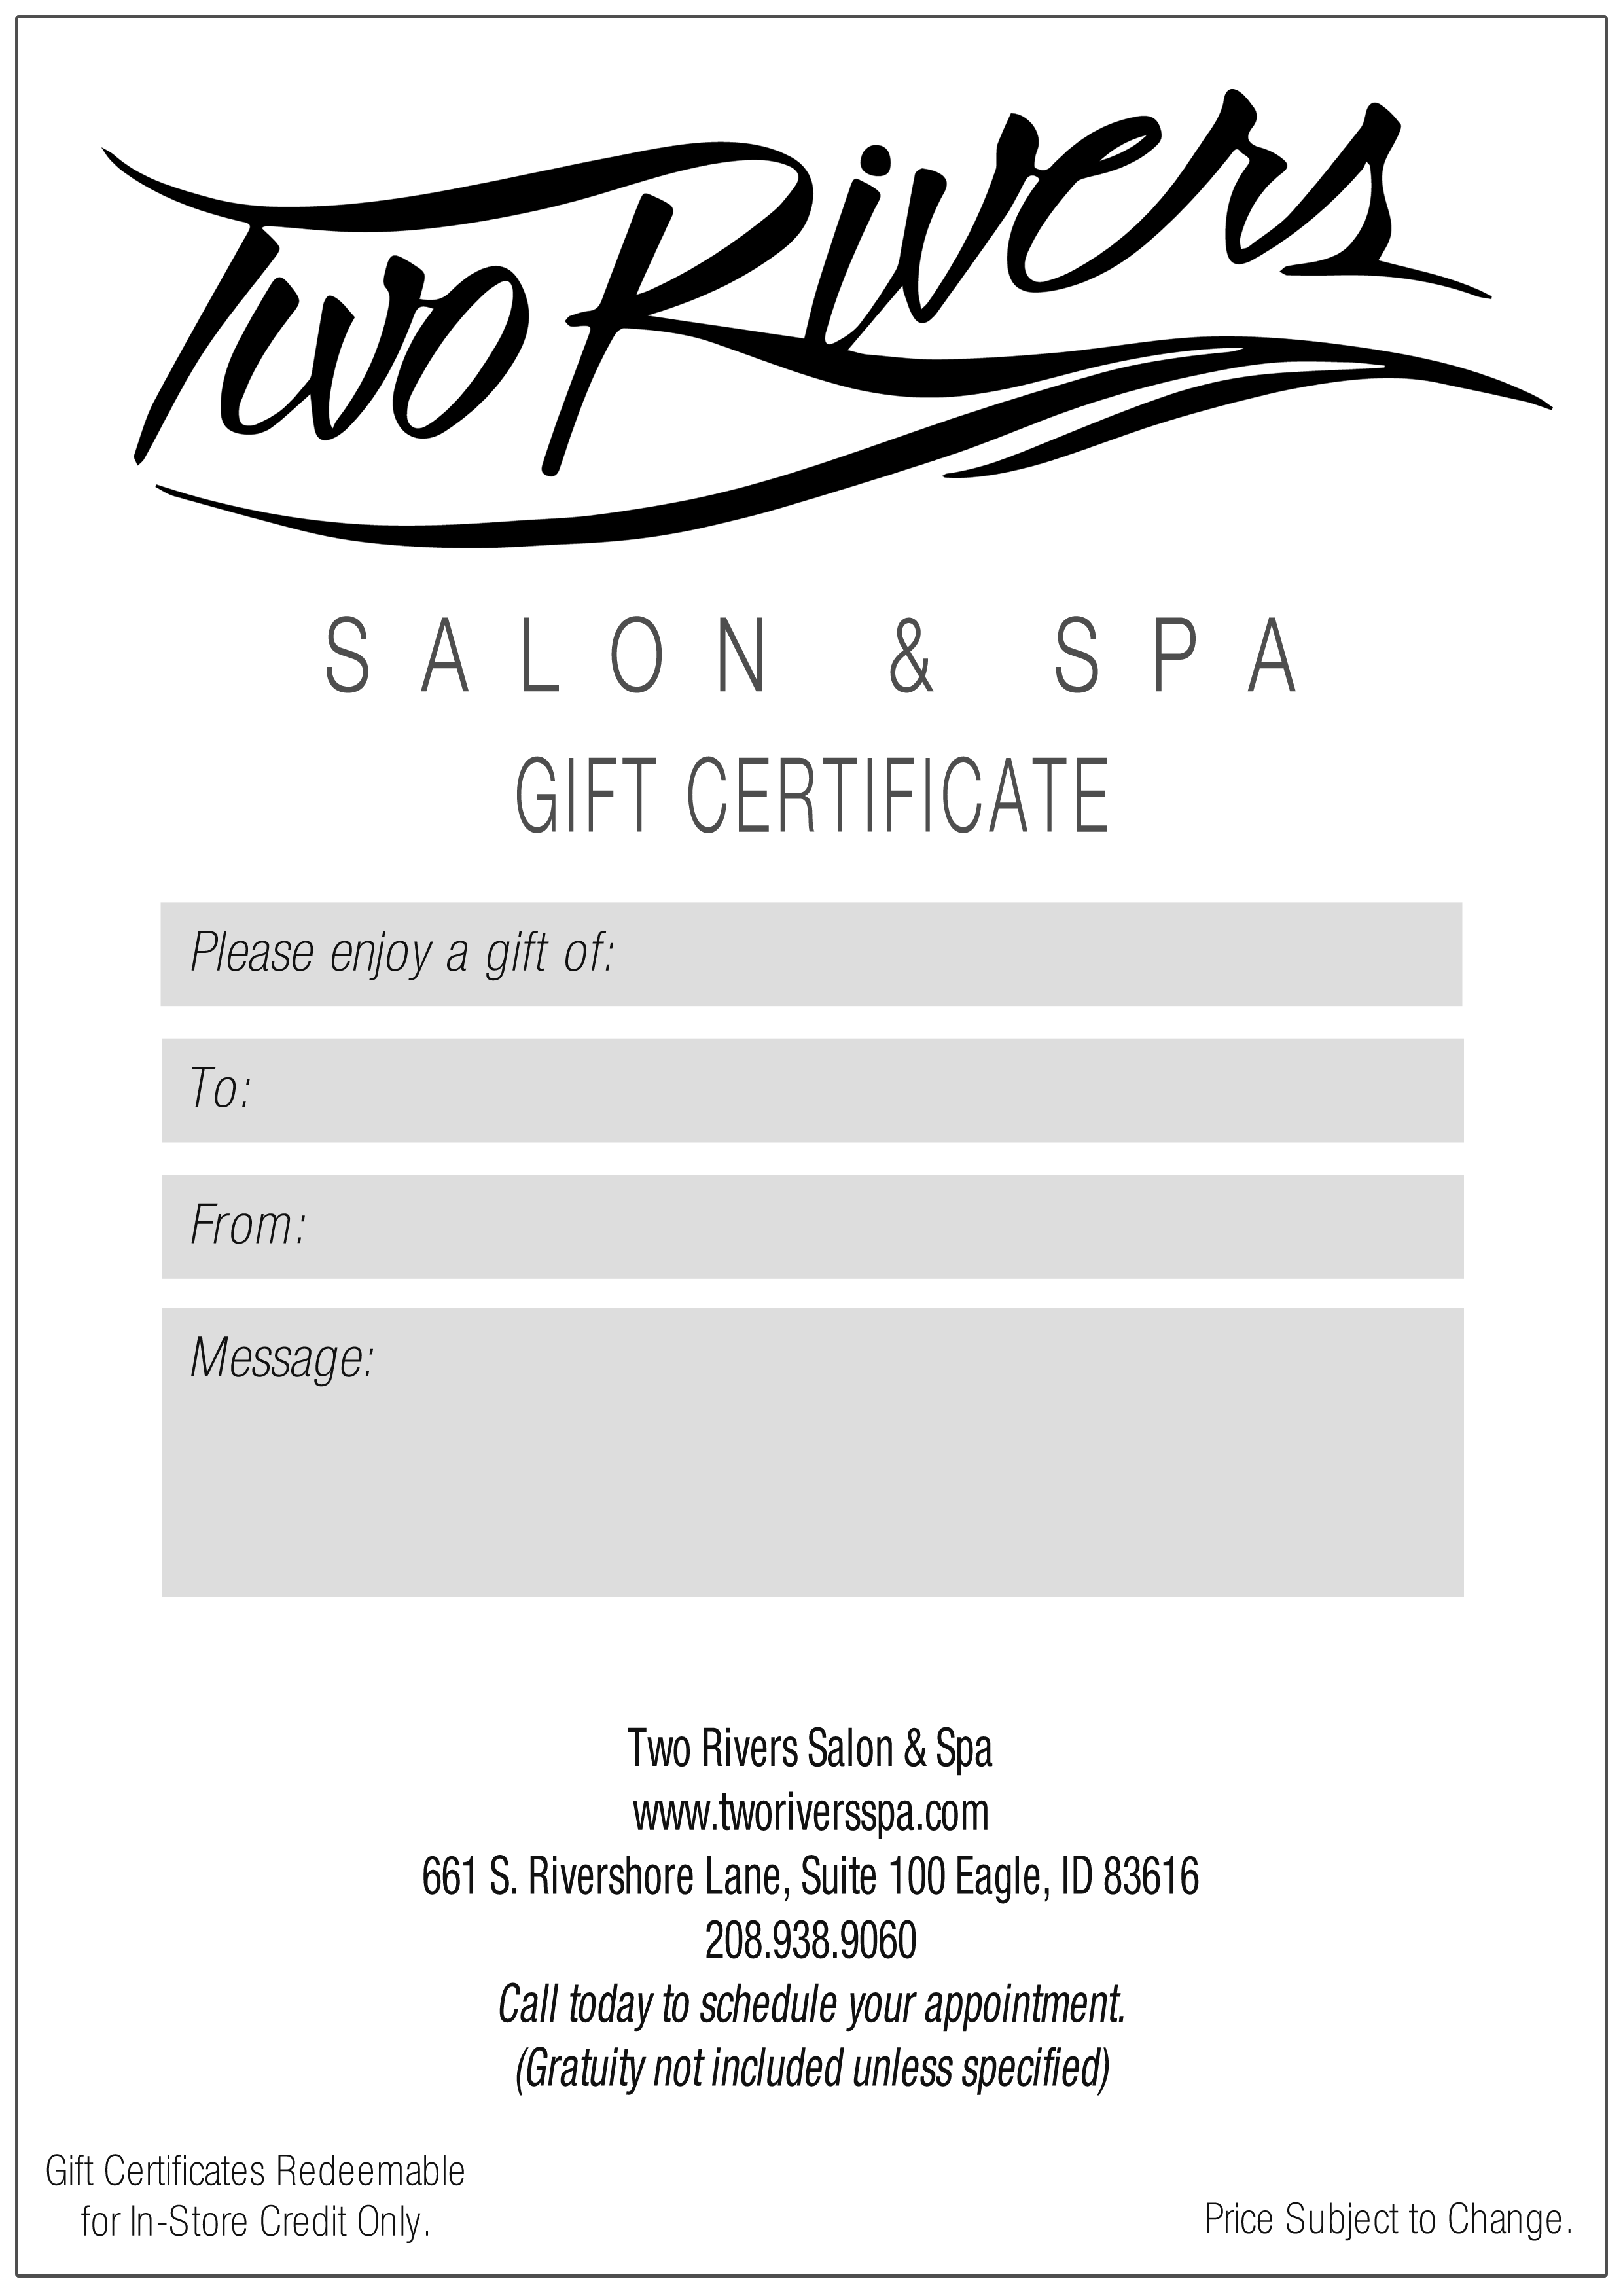 General Gift Certificate Two Rivers Spa Salon